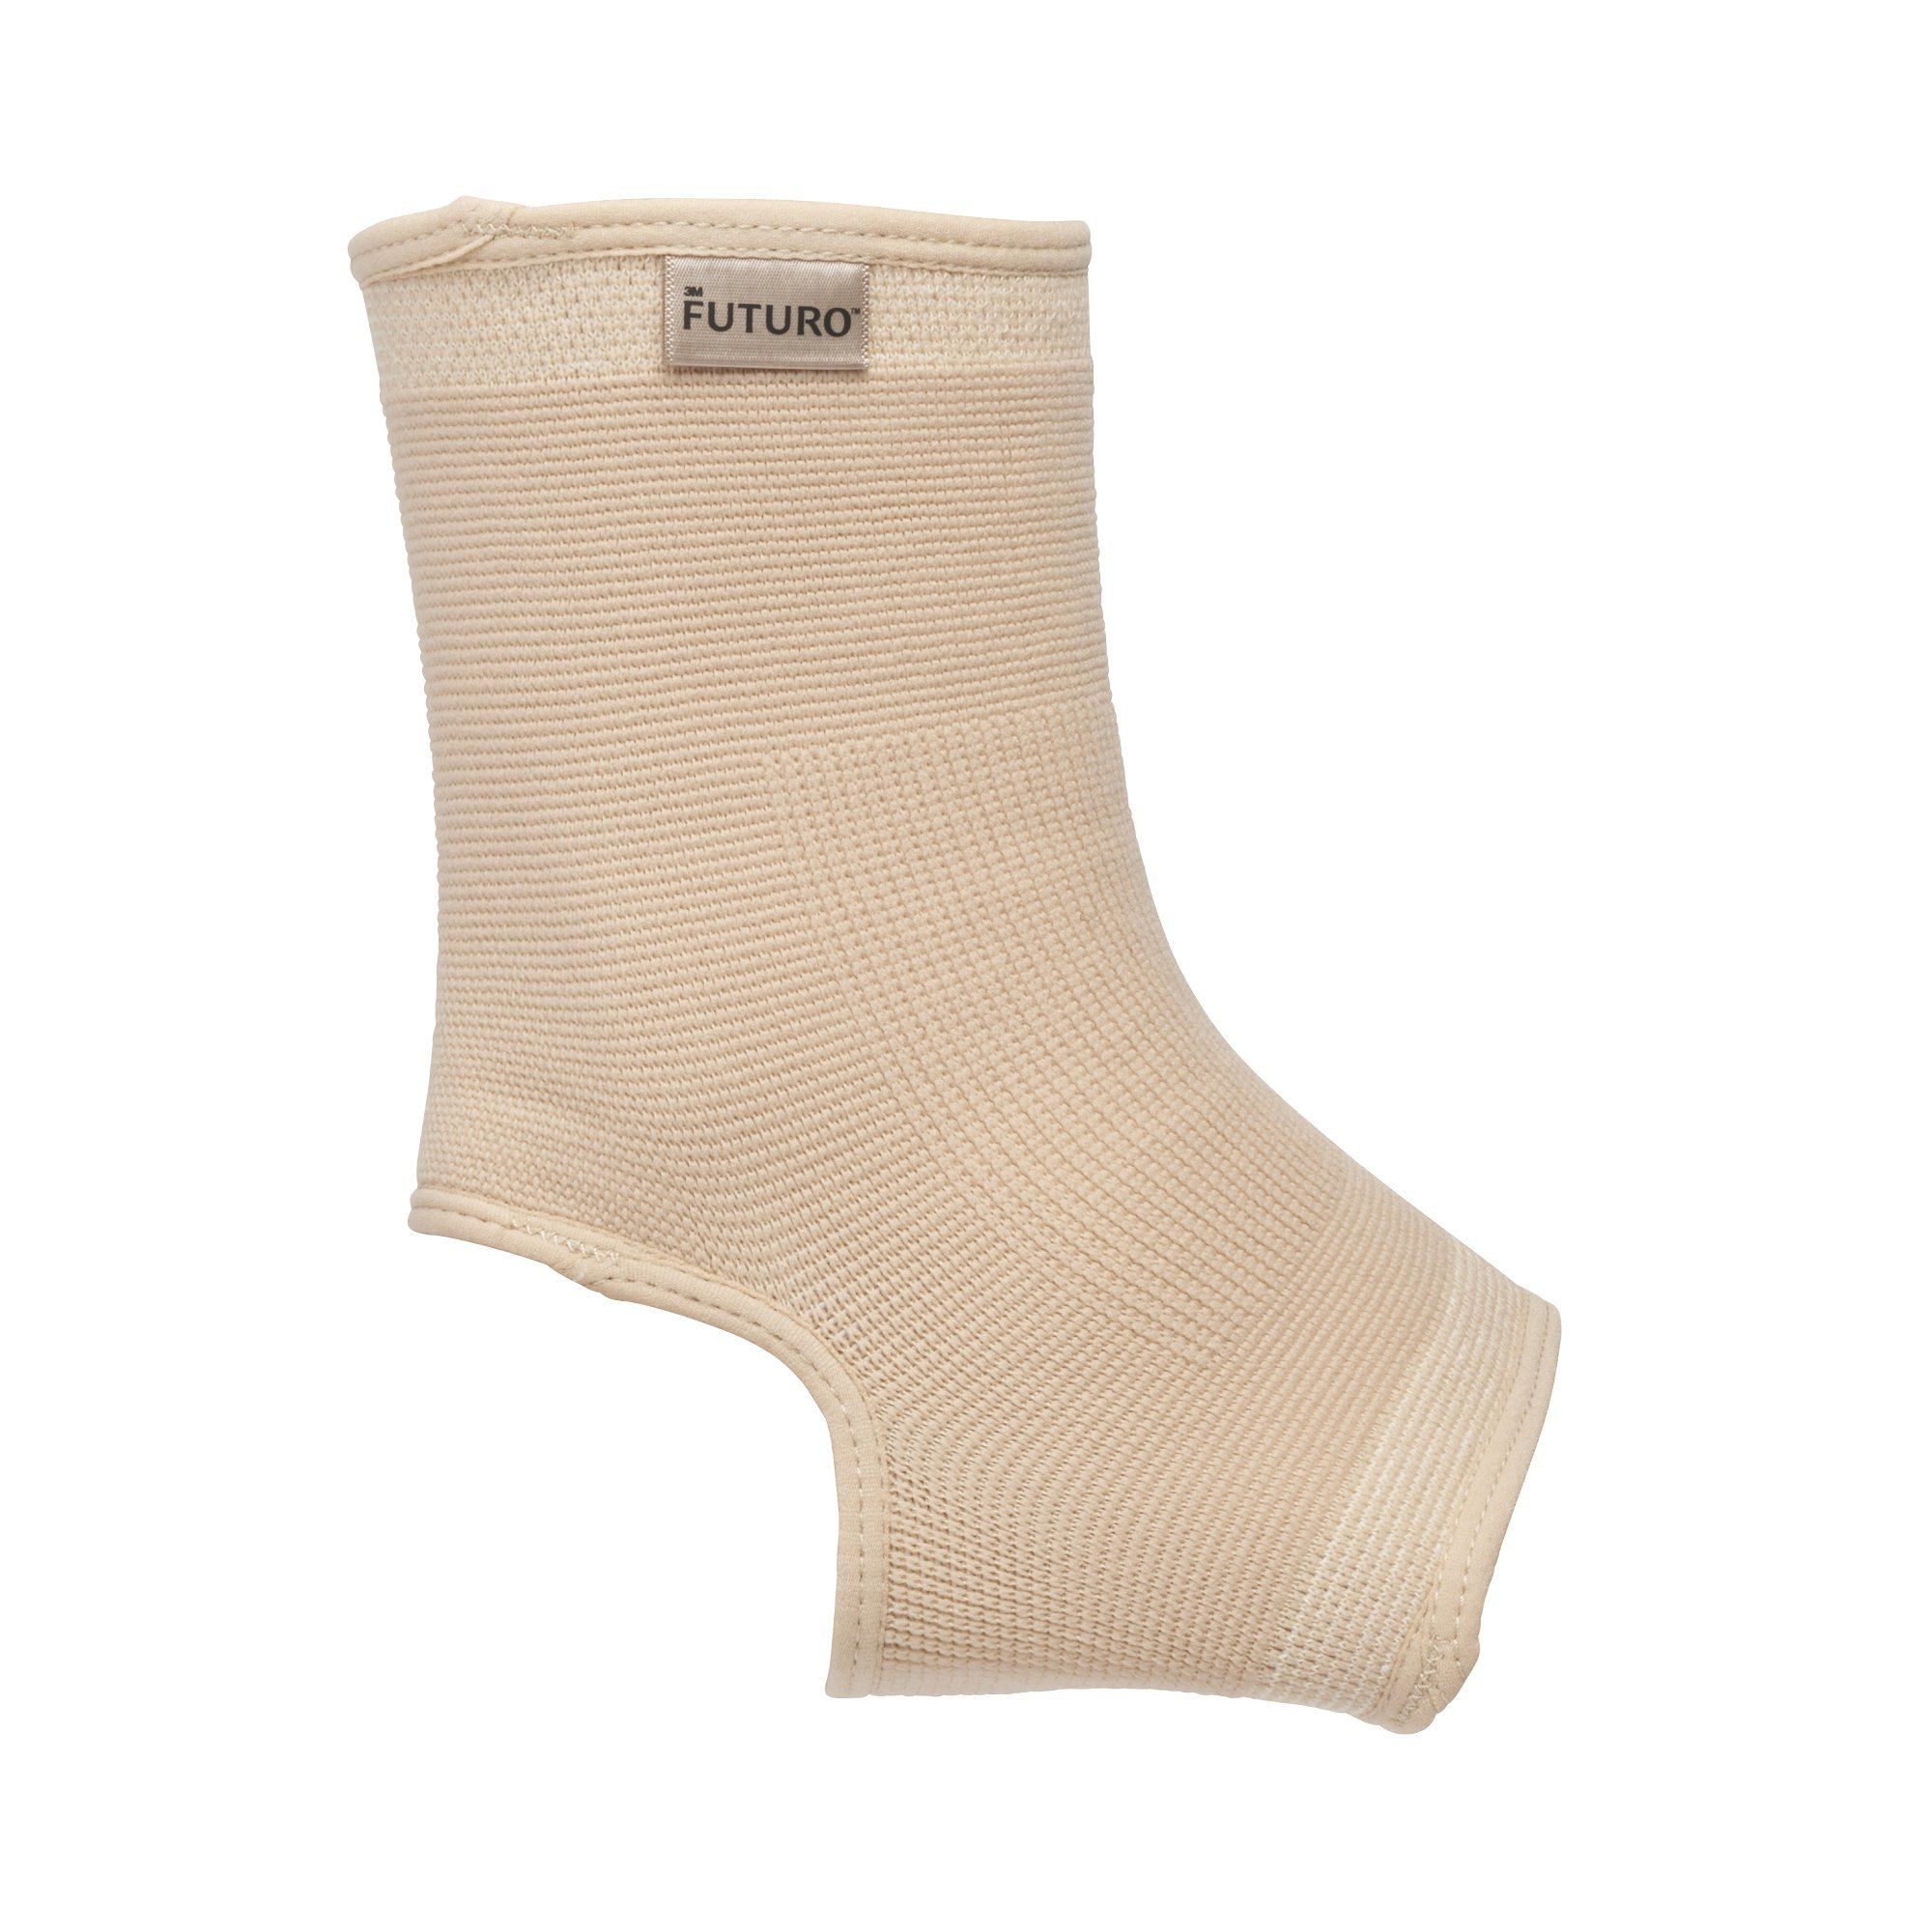 Futuro Comfort Lift Ankle Support, Small (Pack of 2)